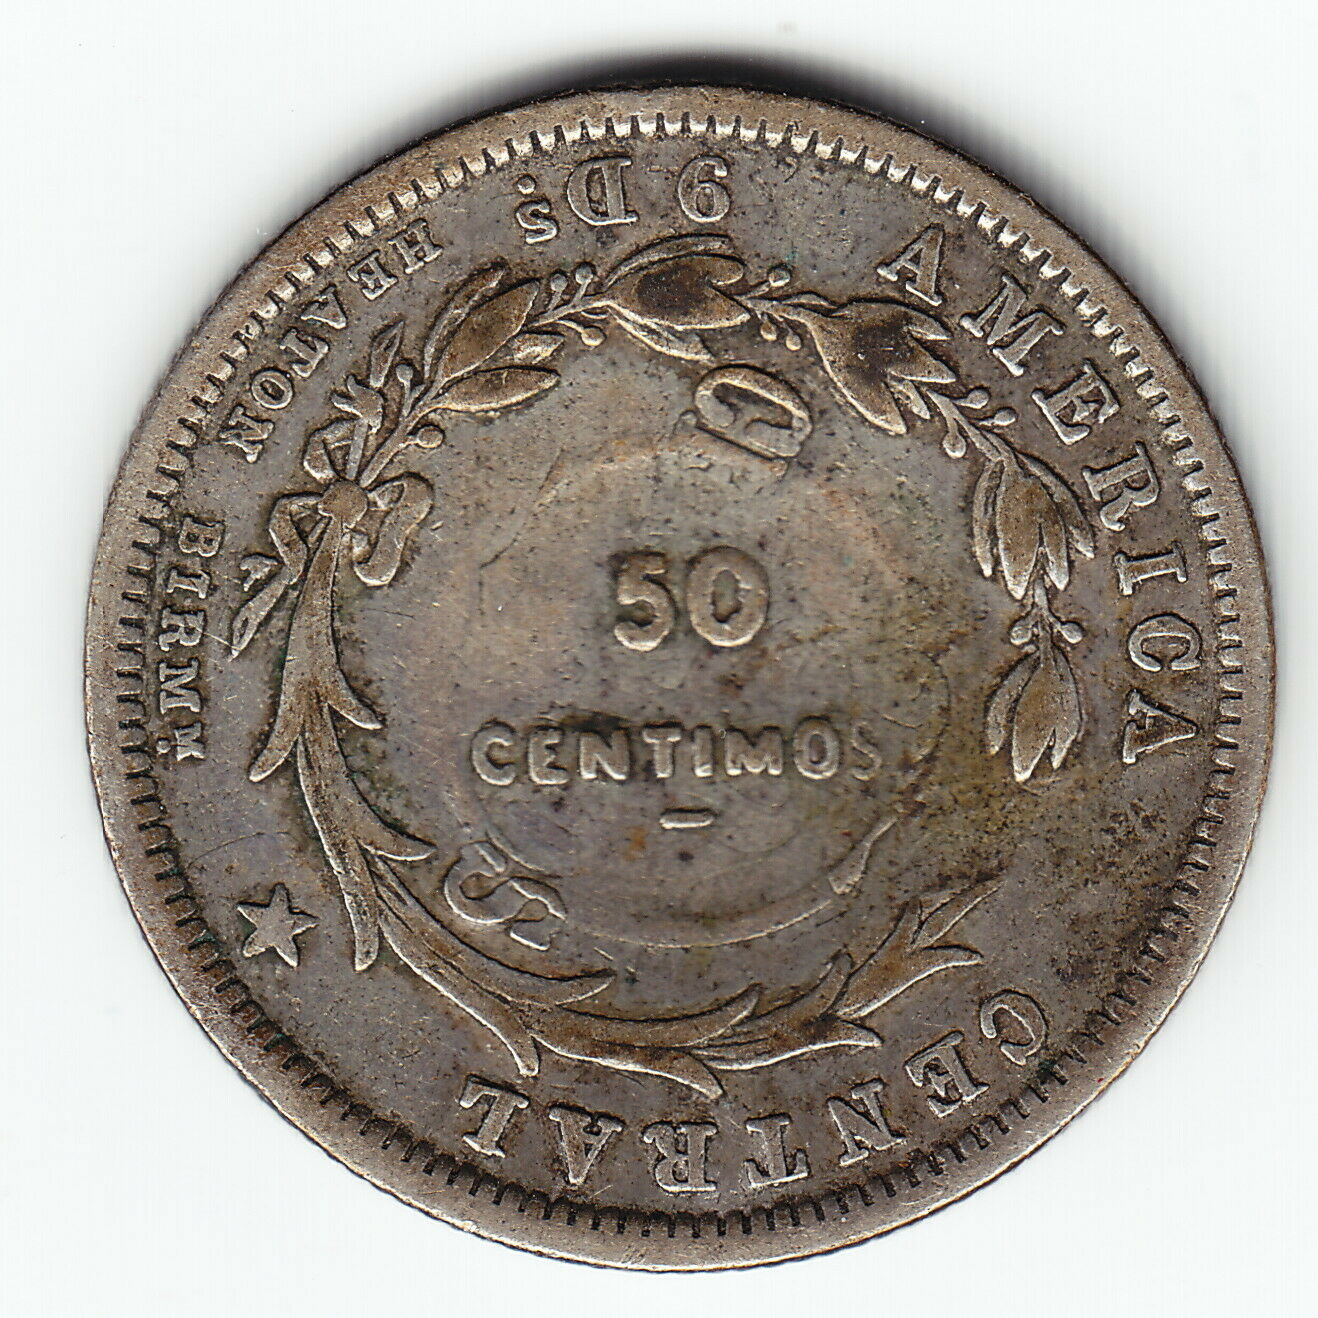 Countermarked coinage - 50 Centimos (1923)